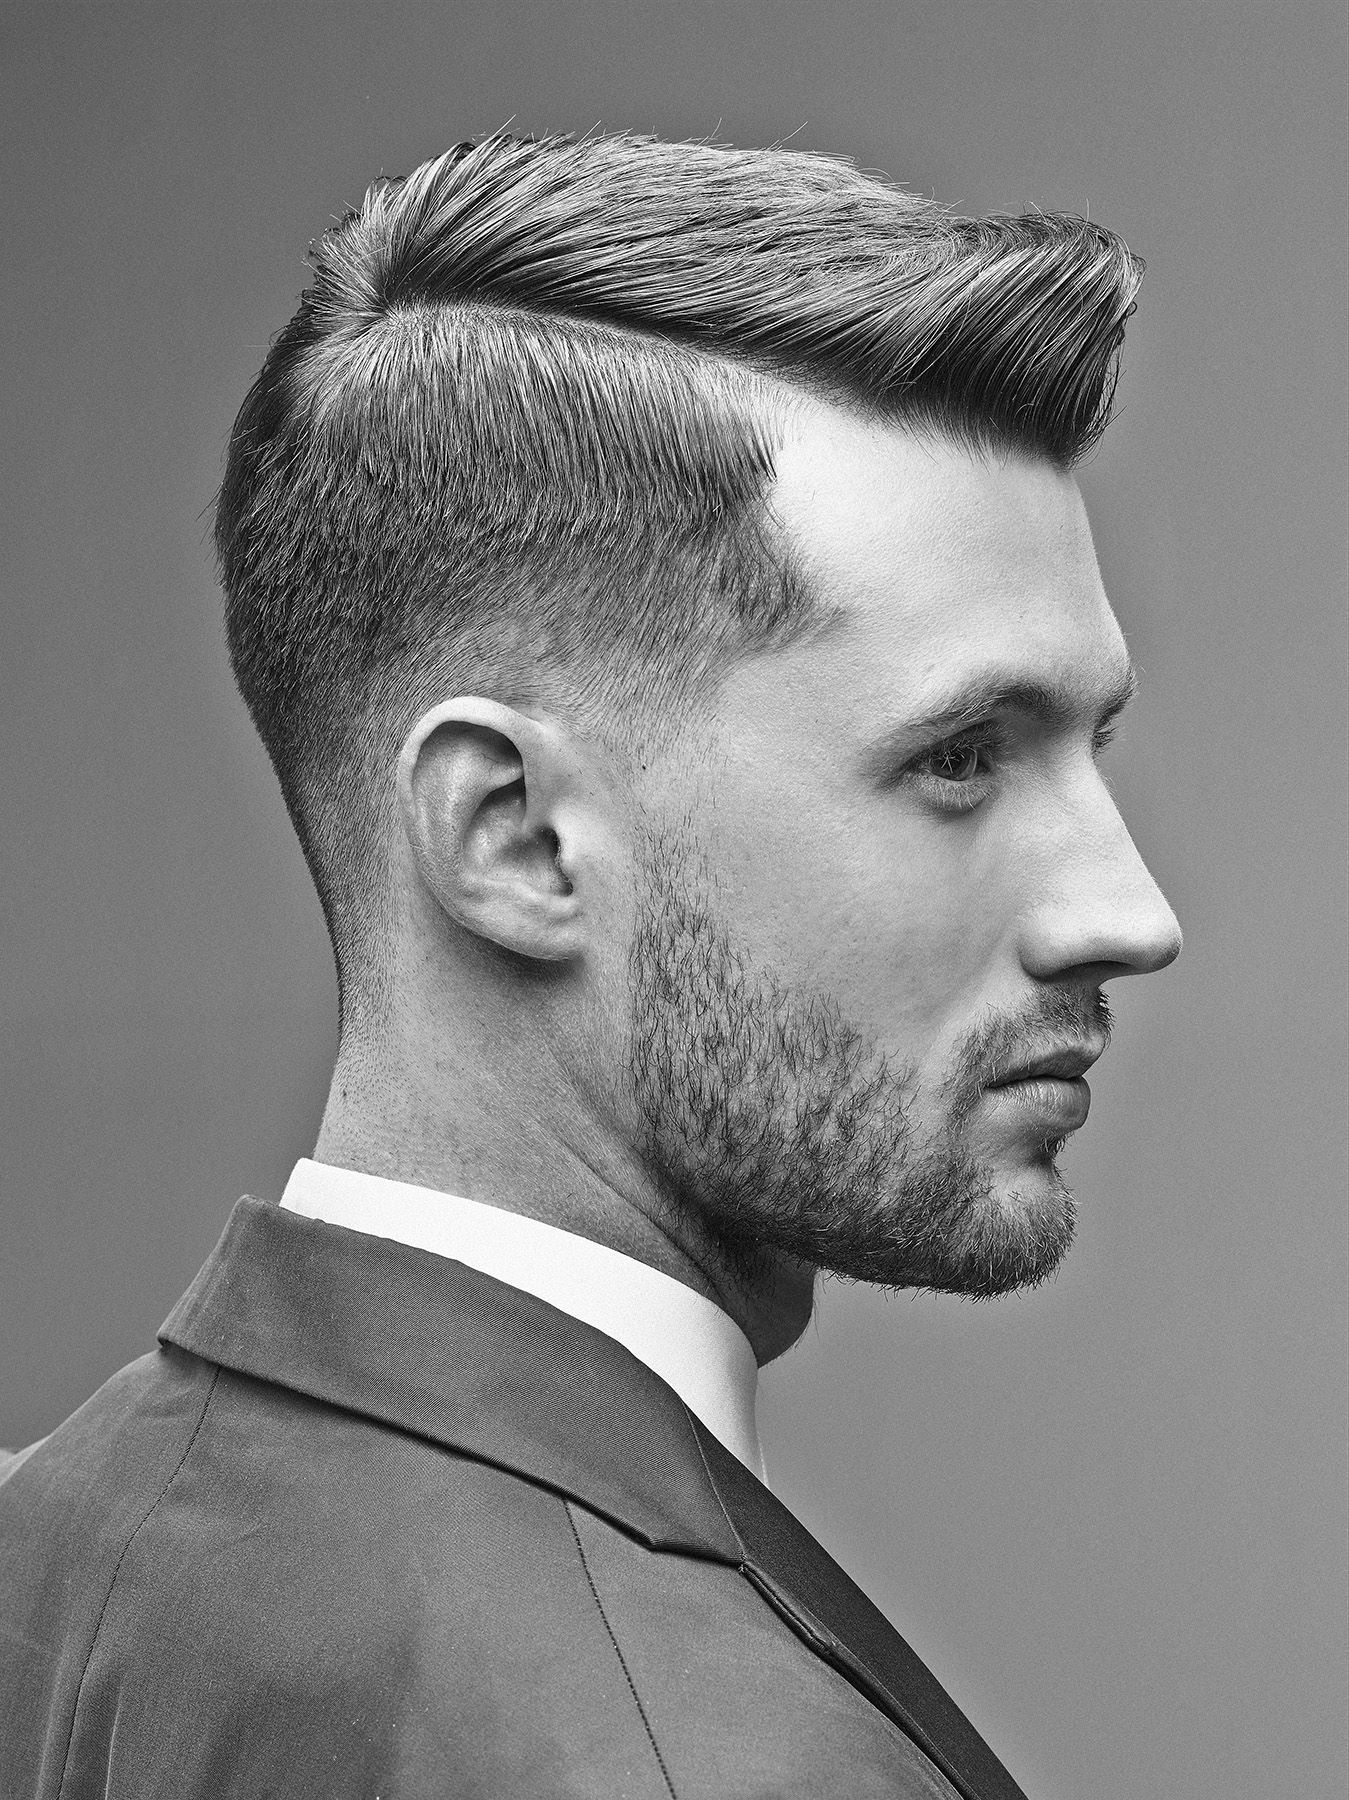 of the most gorgeous wellgroomed guys on the globe globe and